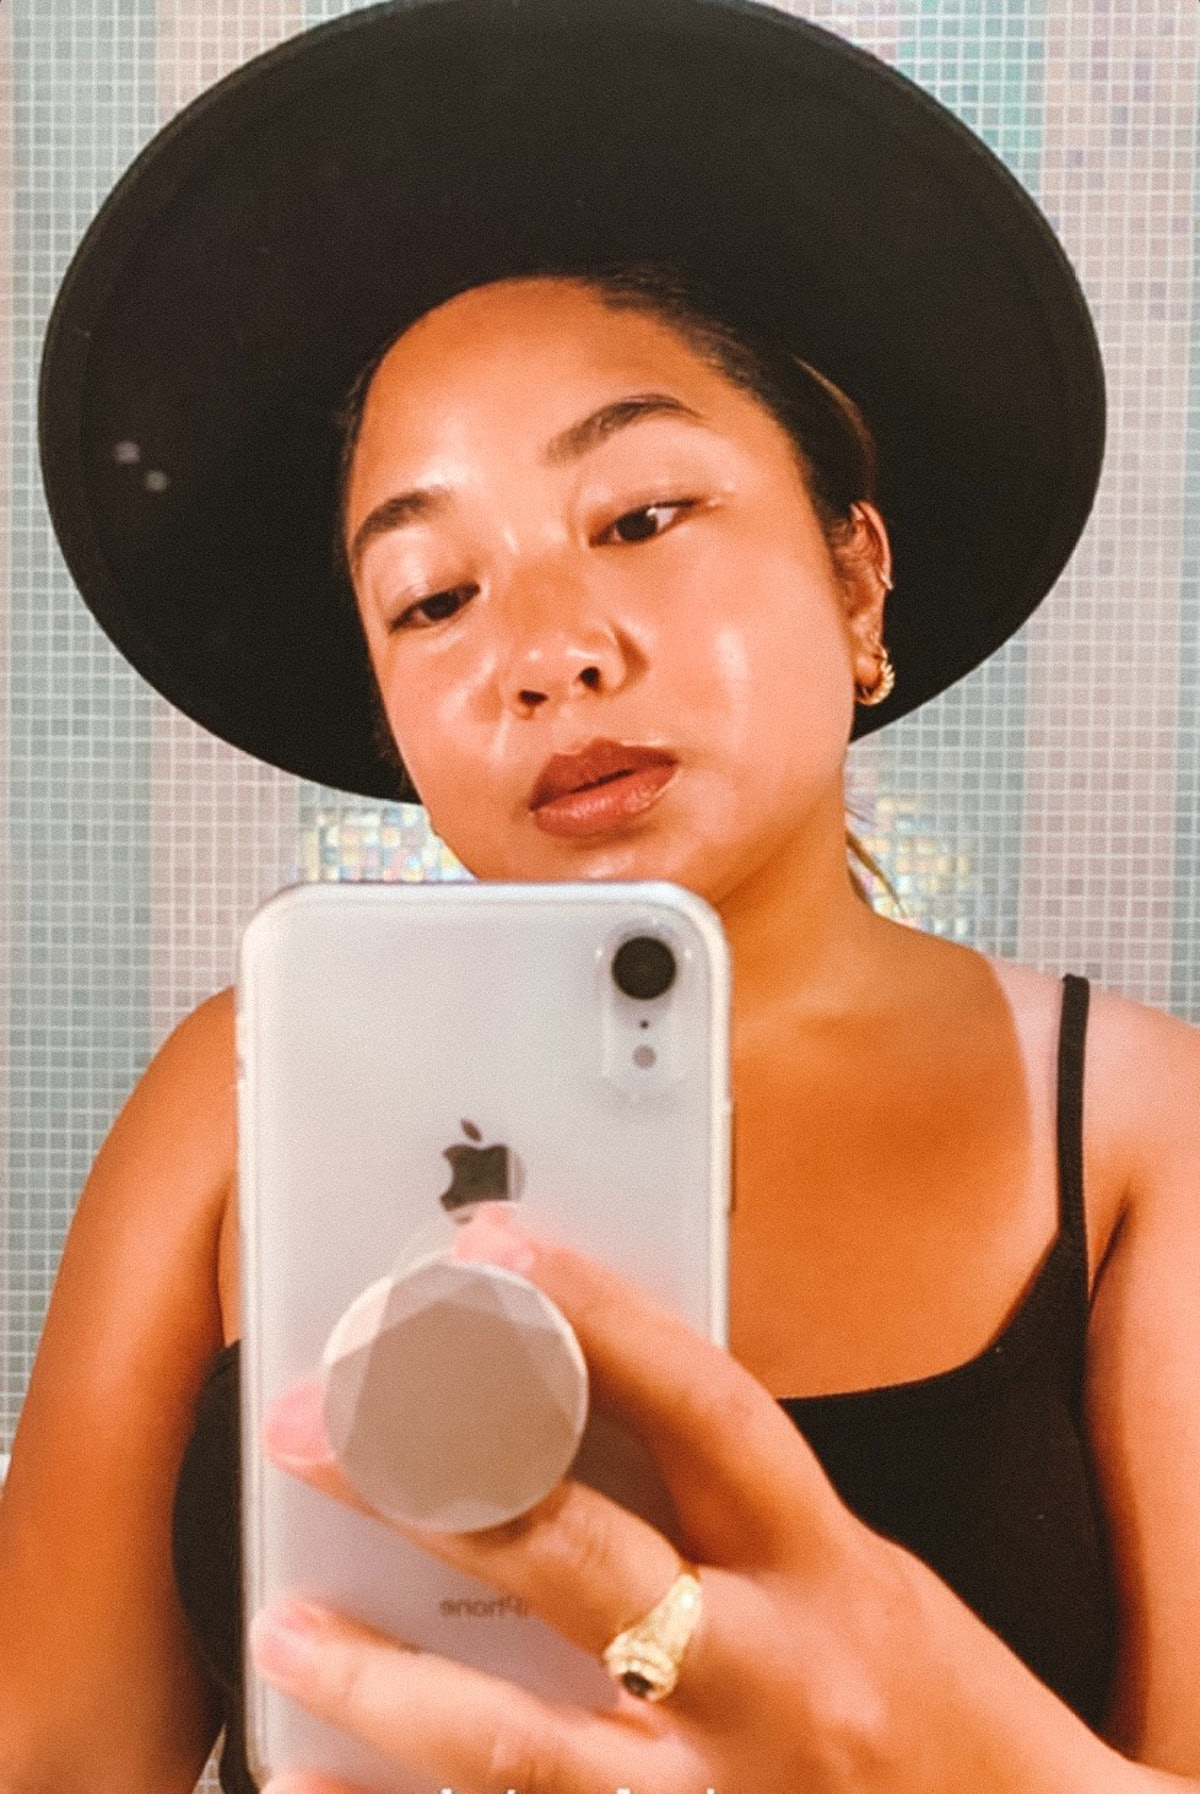 A woman in a black tank top and black hat takes a closeup phone selfie in an elevator mirror.